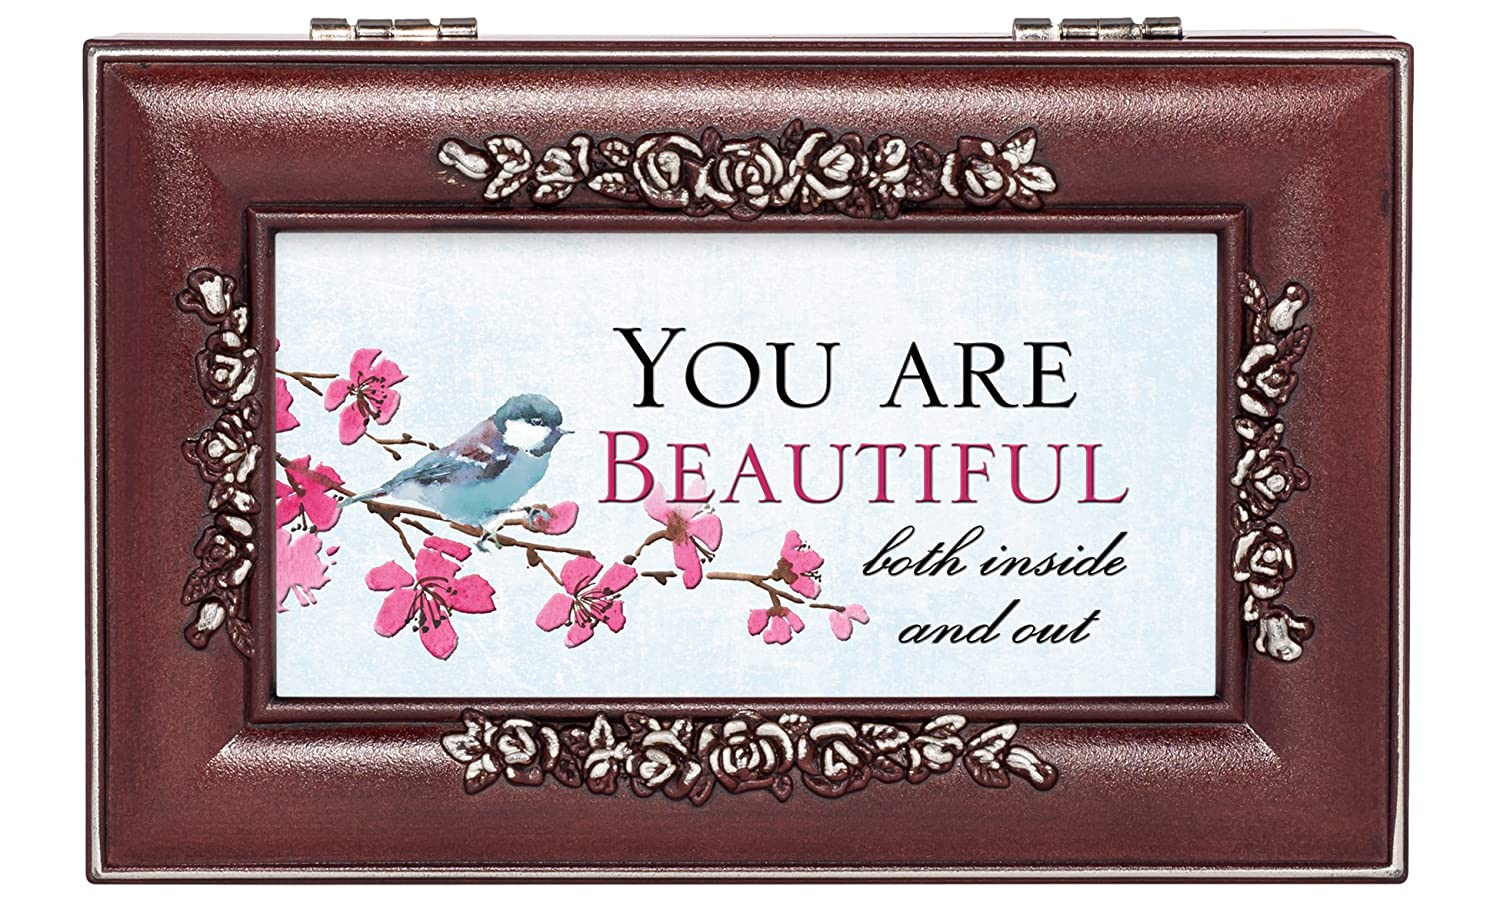 逆輸入 You Are Beautiful My Bird On Branchローズウッド仕上げ音楽ジュエリーボックス B01DL1NBGY Bird – Plays You Are My Sunshine B01DL1NBGY, 瑞鳳台湾料理:6090236c --- arcego.dominiotemporario.com